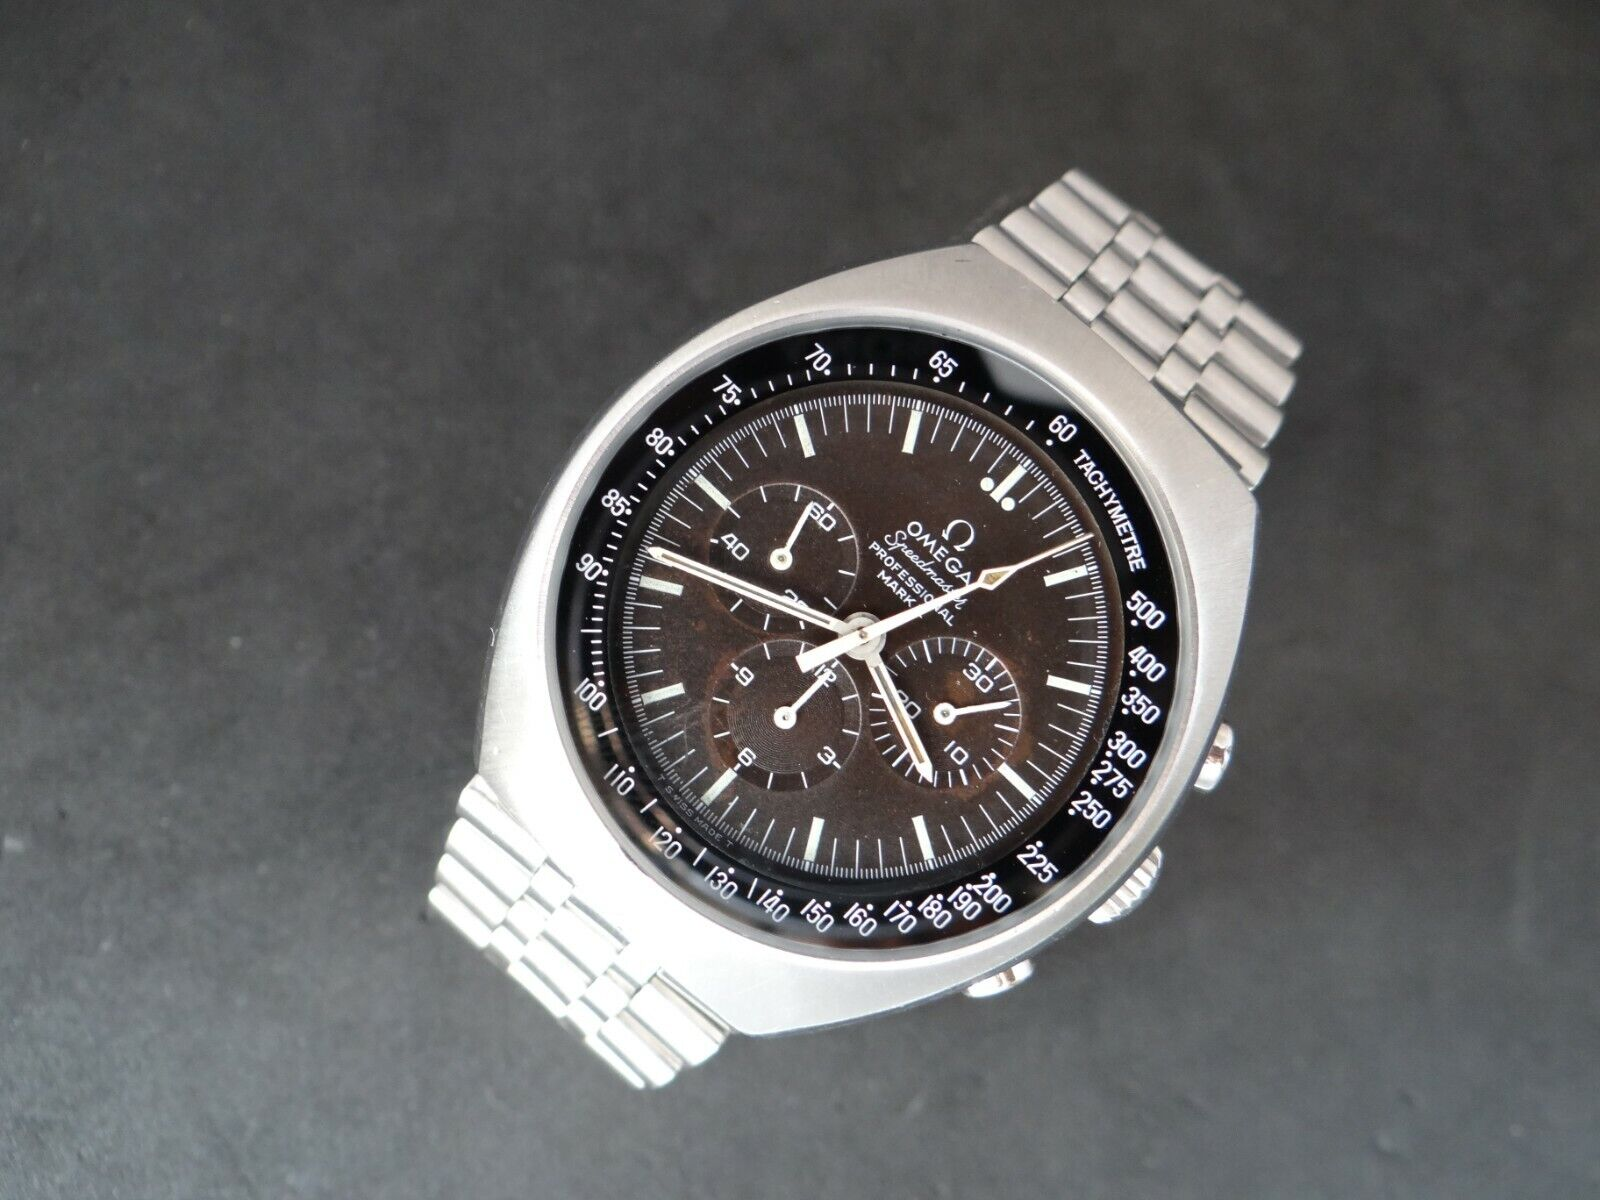 VINTAGE OMEGA SPEEDMASTER 861 MARK II TROPICAL BROWN DIAL CHRONOGRAPH 145.014 - watch picture 1